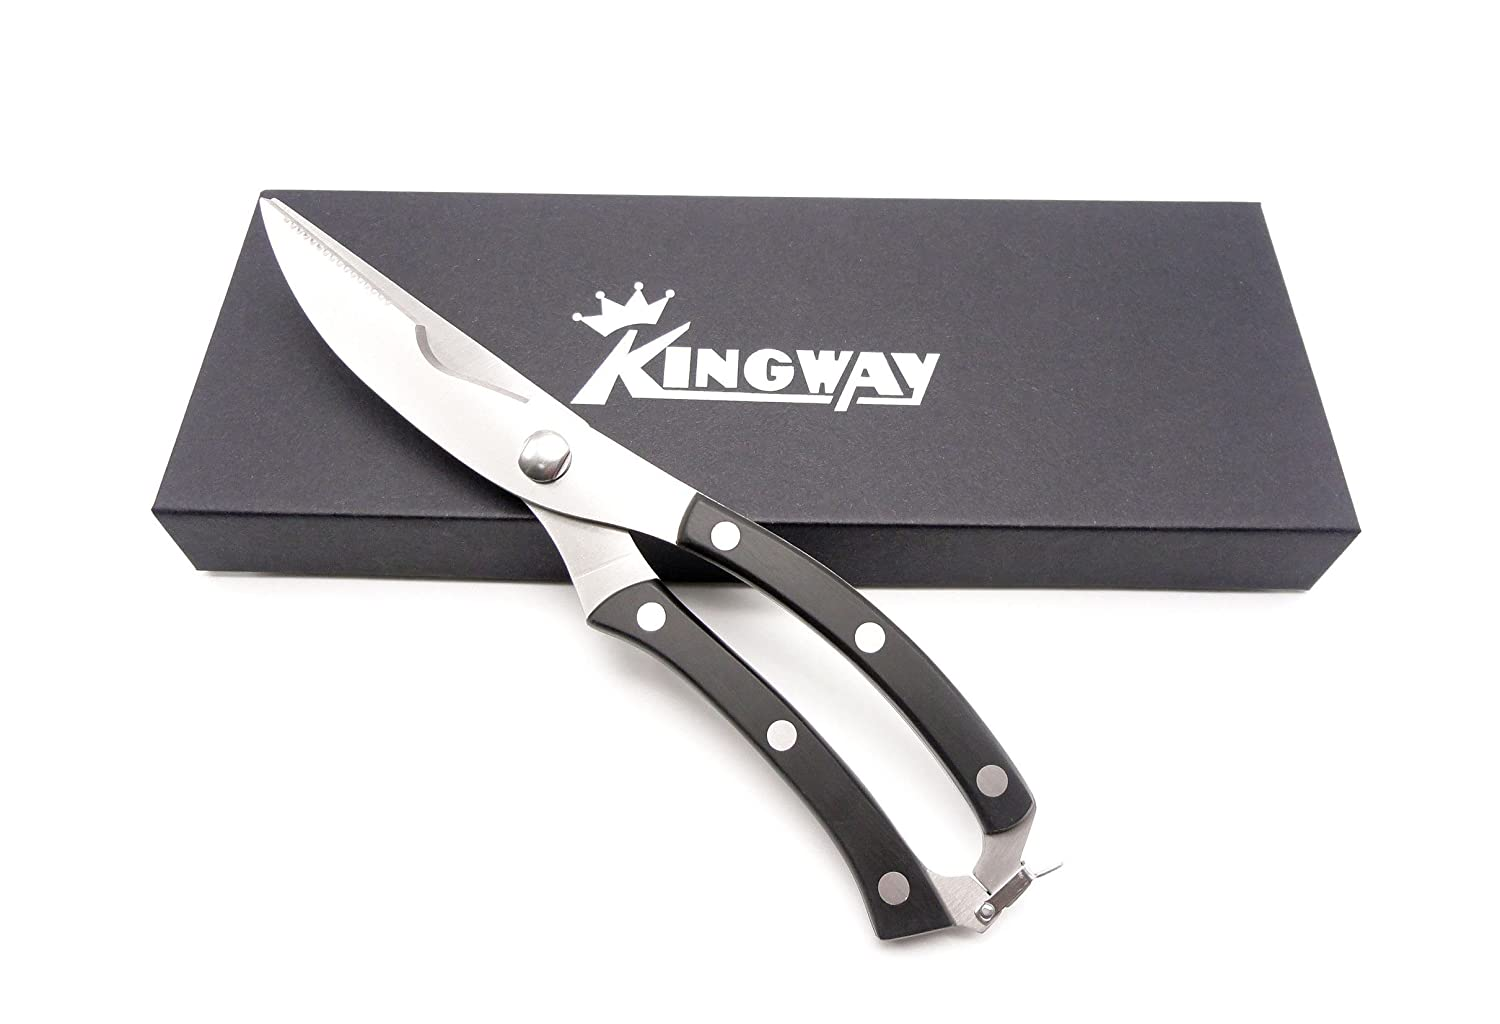 Kingway Best Large Heavy Duty Poultry Shears